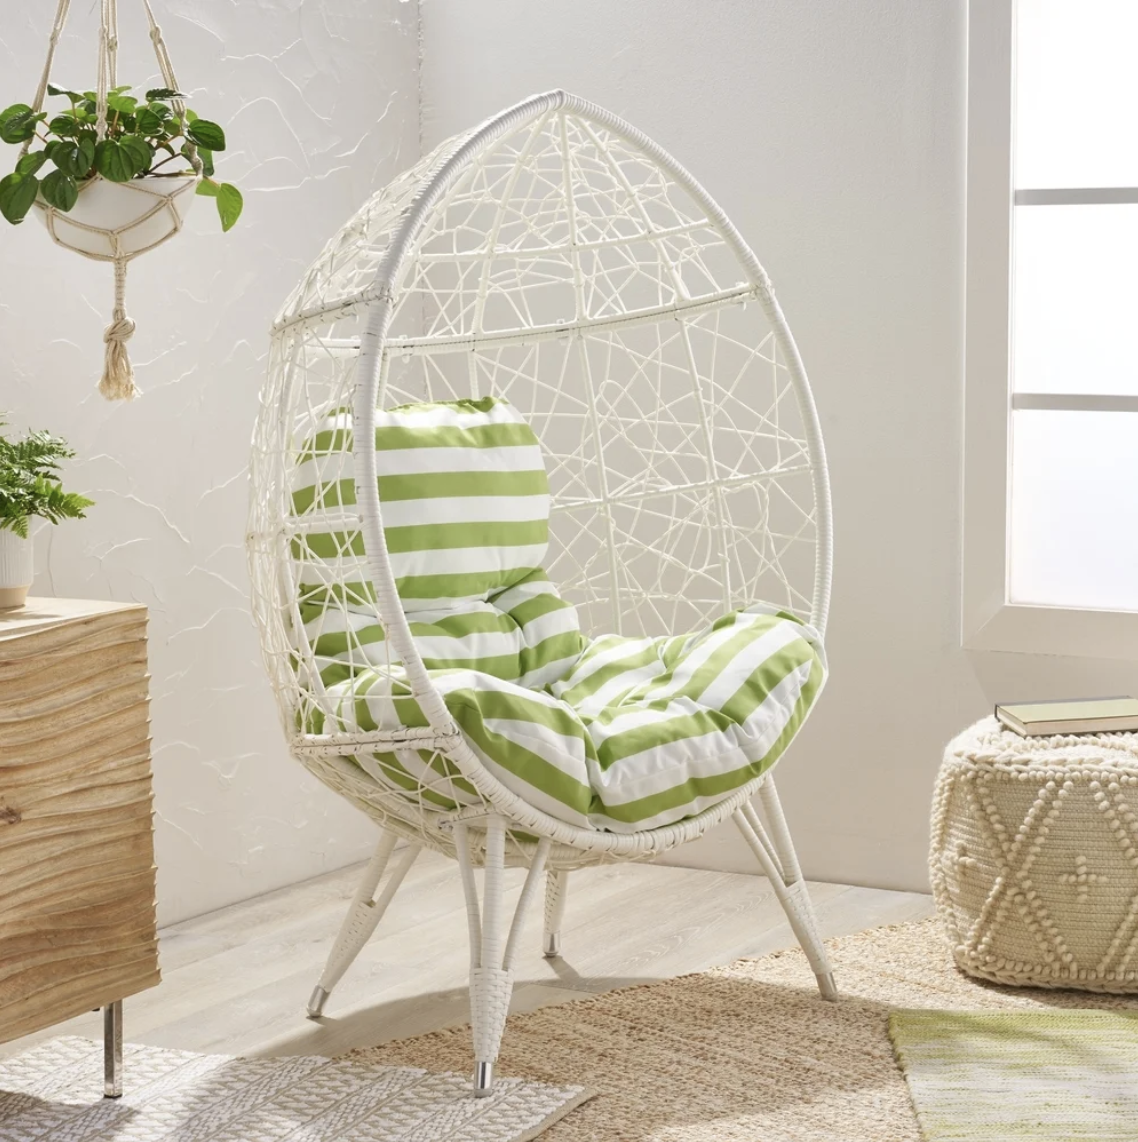 Target Southport Patio Egg Chair, Target Southport Patio Egg Chair dupes, affordable dupes for the Target Southport Patio Egg Chair, egg chair inspiration, egg chair home ideas, egg chairs, wicker egg chairs, hanging egg chairs, interior, home decor, home interior, interior styling, target dupes, egg chair indoor furniture inspiration, Jennifer Worman, Red Soles and Red Wine, Gavilan Indoor Wicker Teardrop Chair